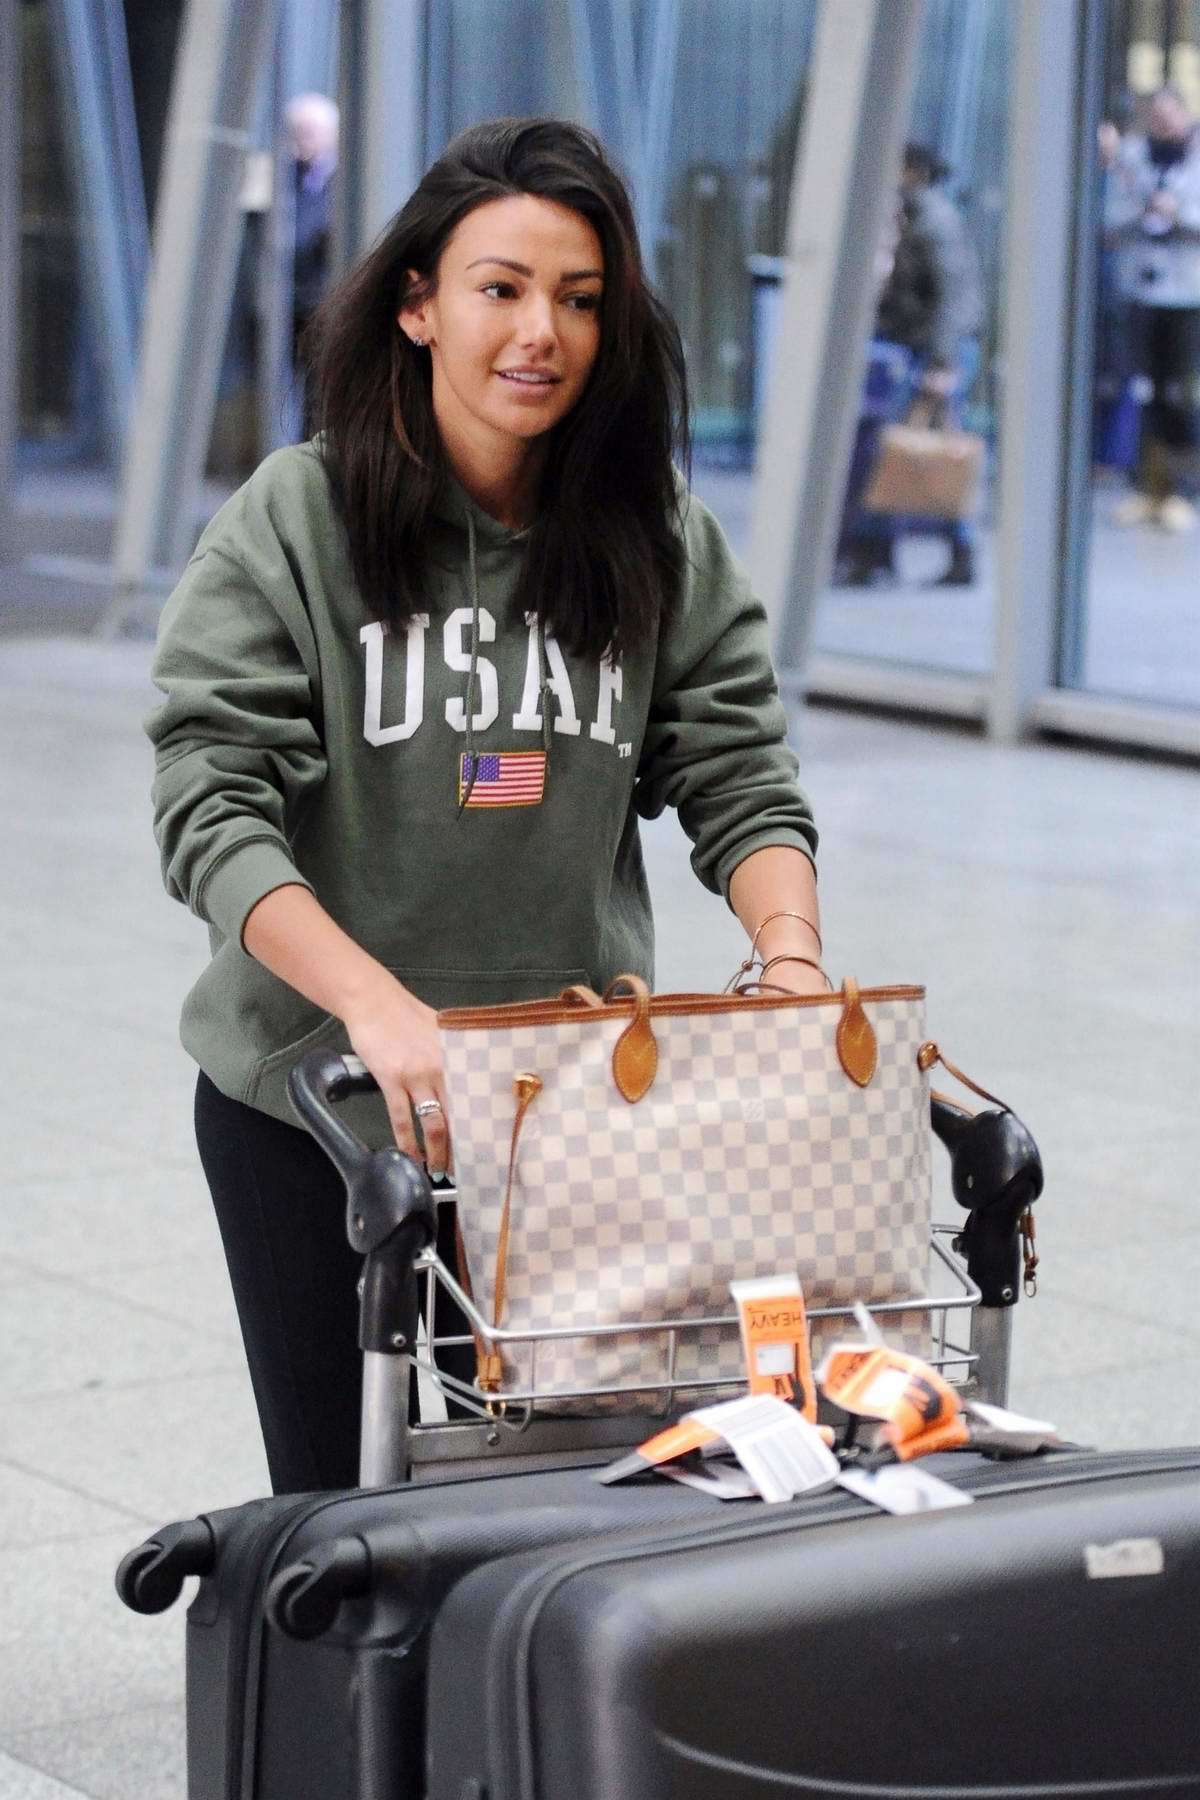 Michelle Keegan arrives in London after 8 months of filming Our Girl